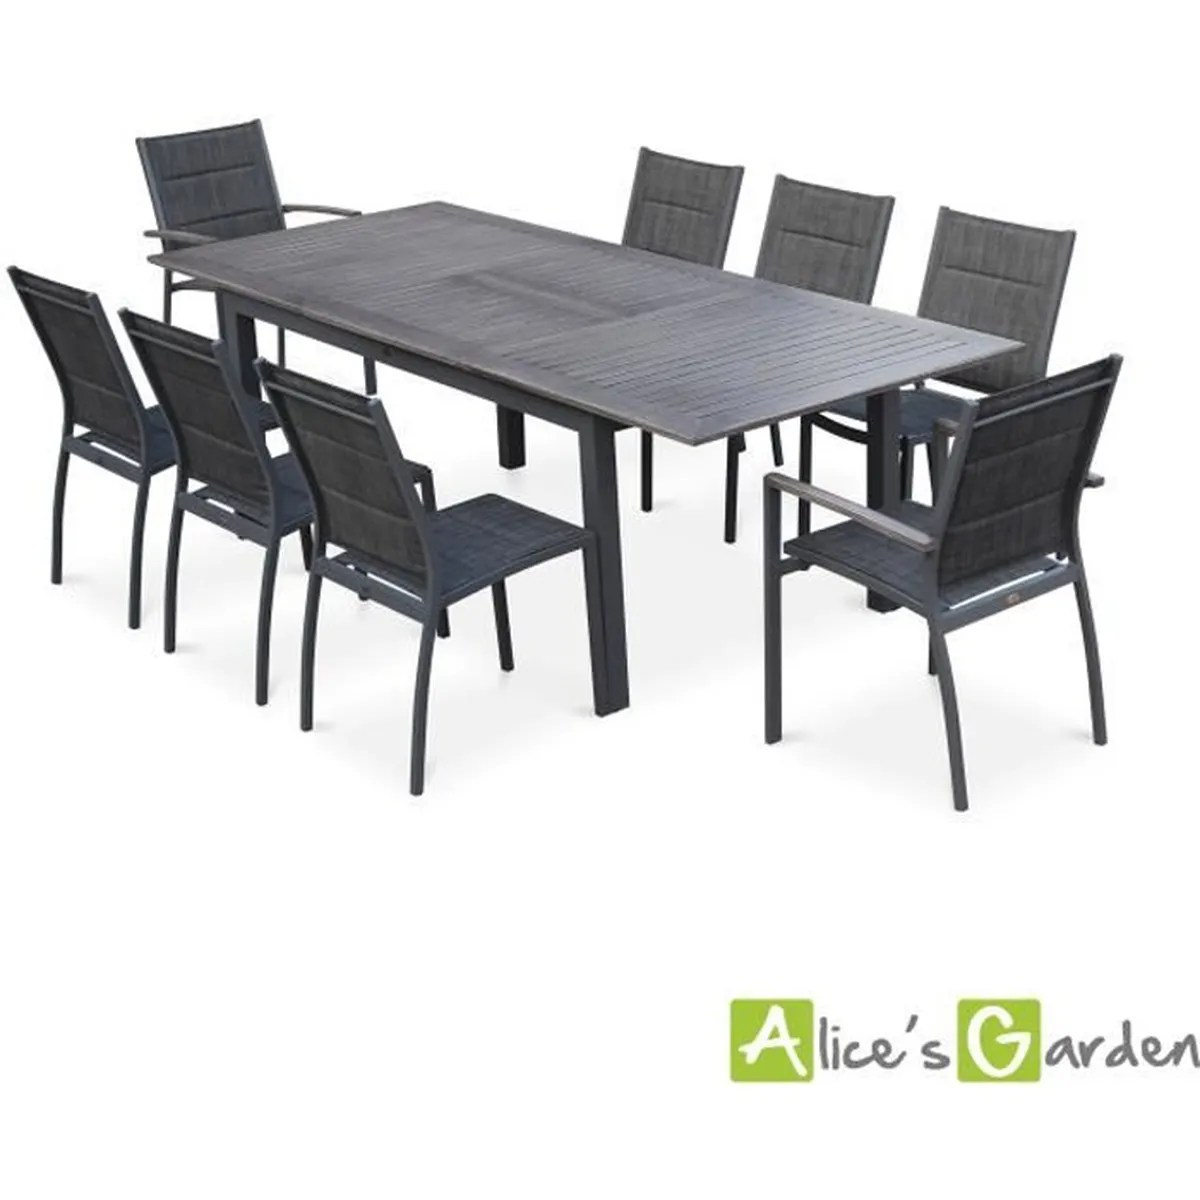 Table De Jardin Extensible 10 Personnes Table De Jardin Rallonge - Maison Design - Wiblia.com